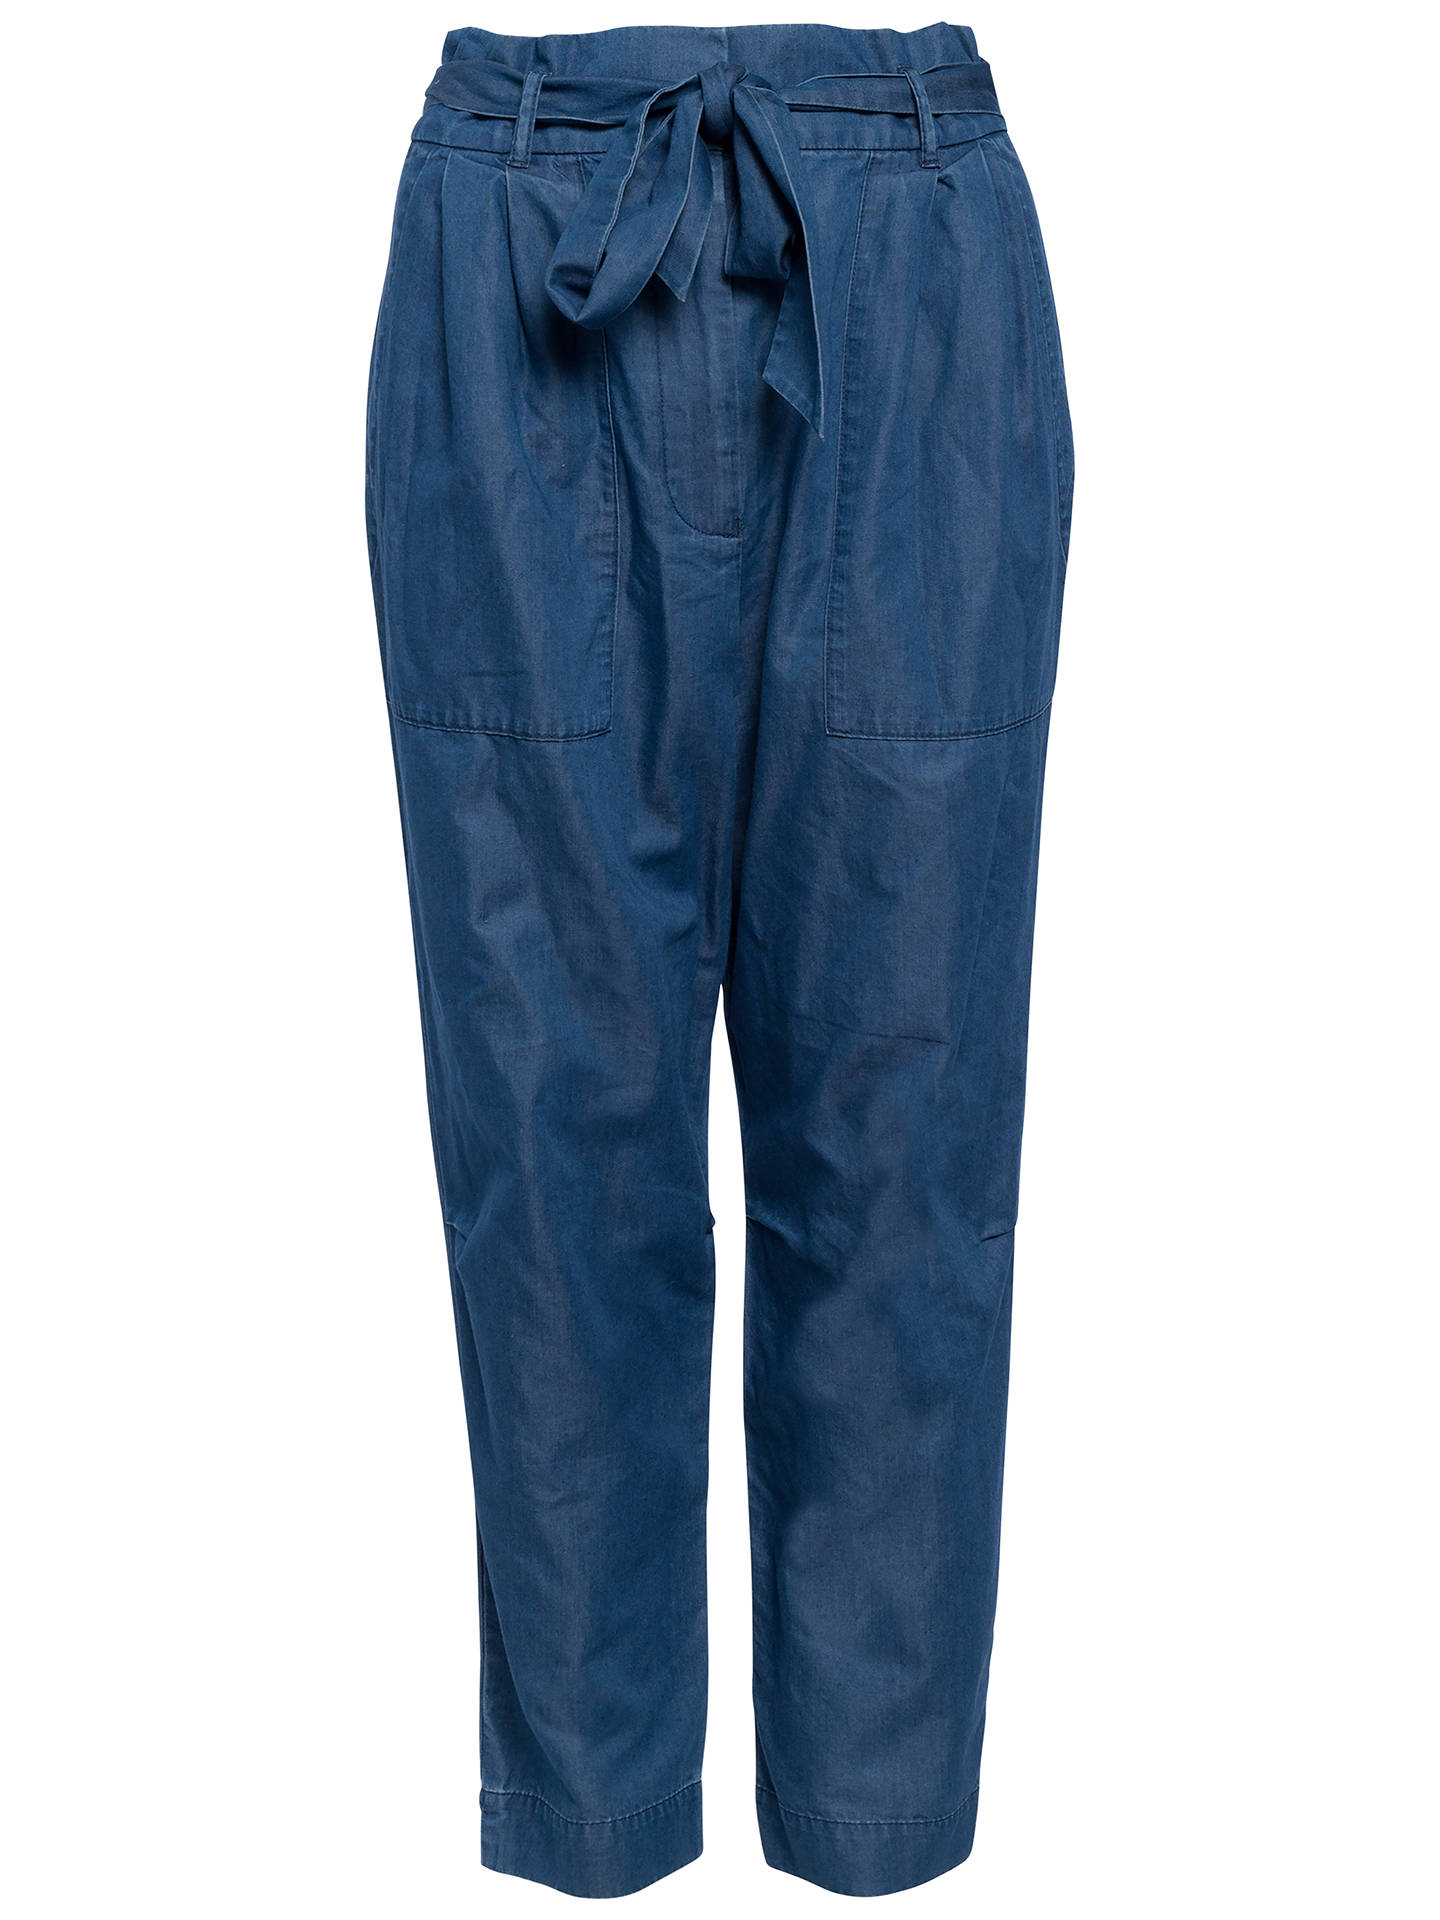 BuyFrench Connection Geada Lightweight Denim Tapered Trousers, Indigo, 6 Online at johnlewis.com